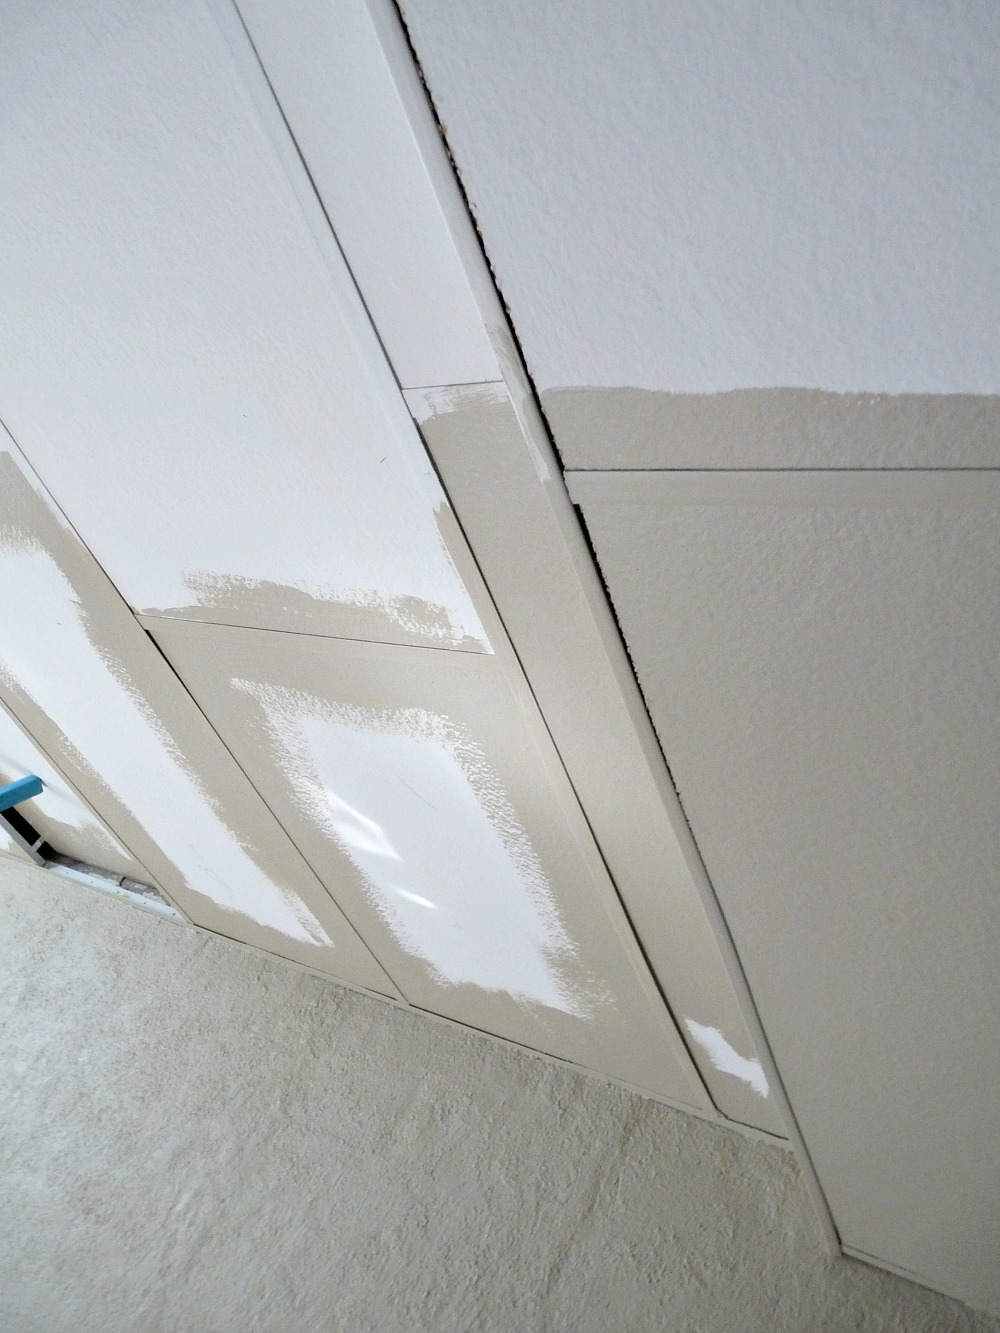 Basement update how to paint drop ceilings you cannot remove dans cannot remove ceiling tiles heres how to paint them dailygadgetfo Image collections